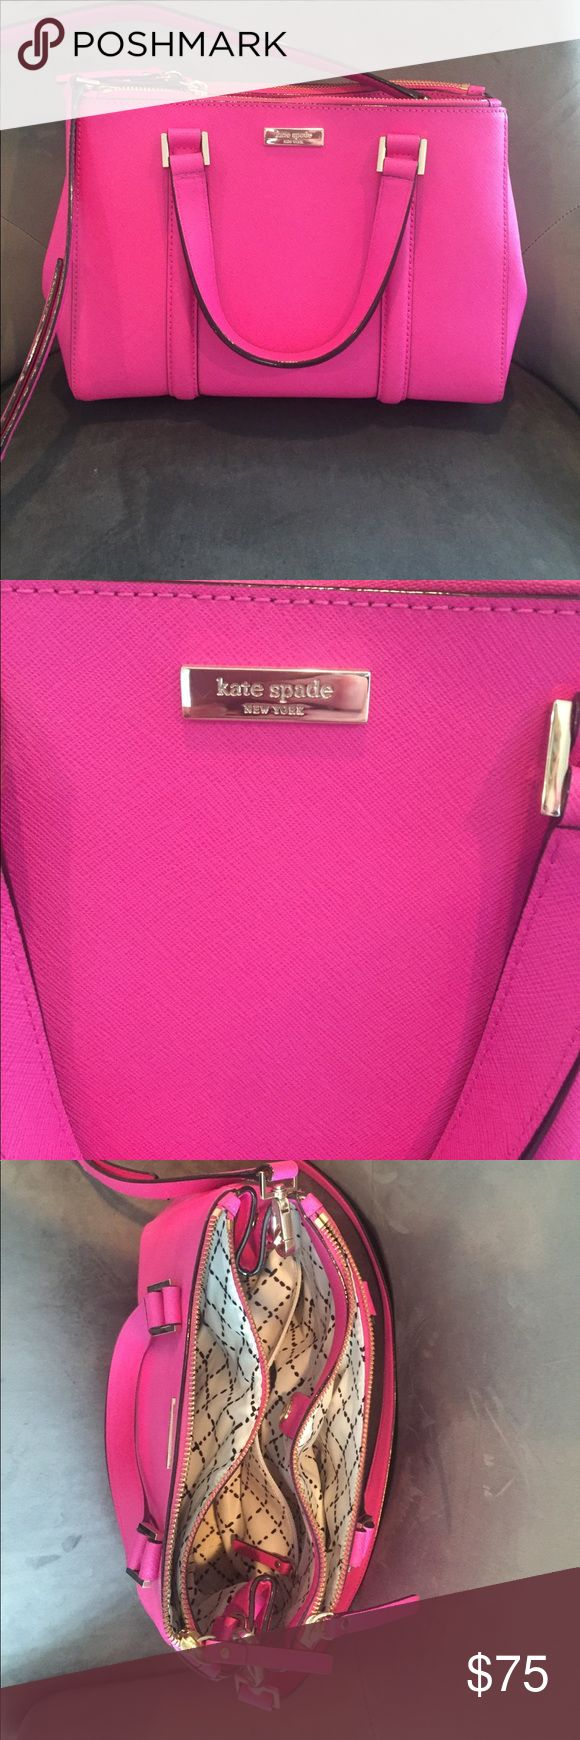 Kate Spade pink purse Kate Spade purse kate spade Bags Totes